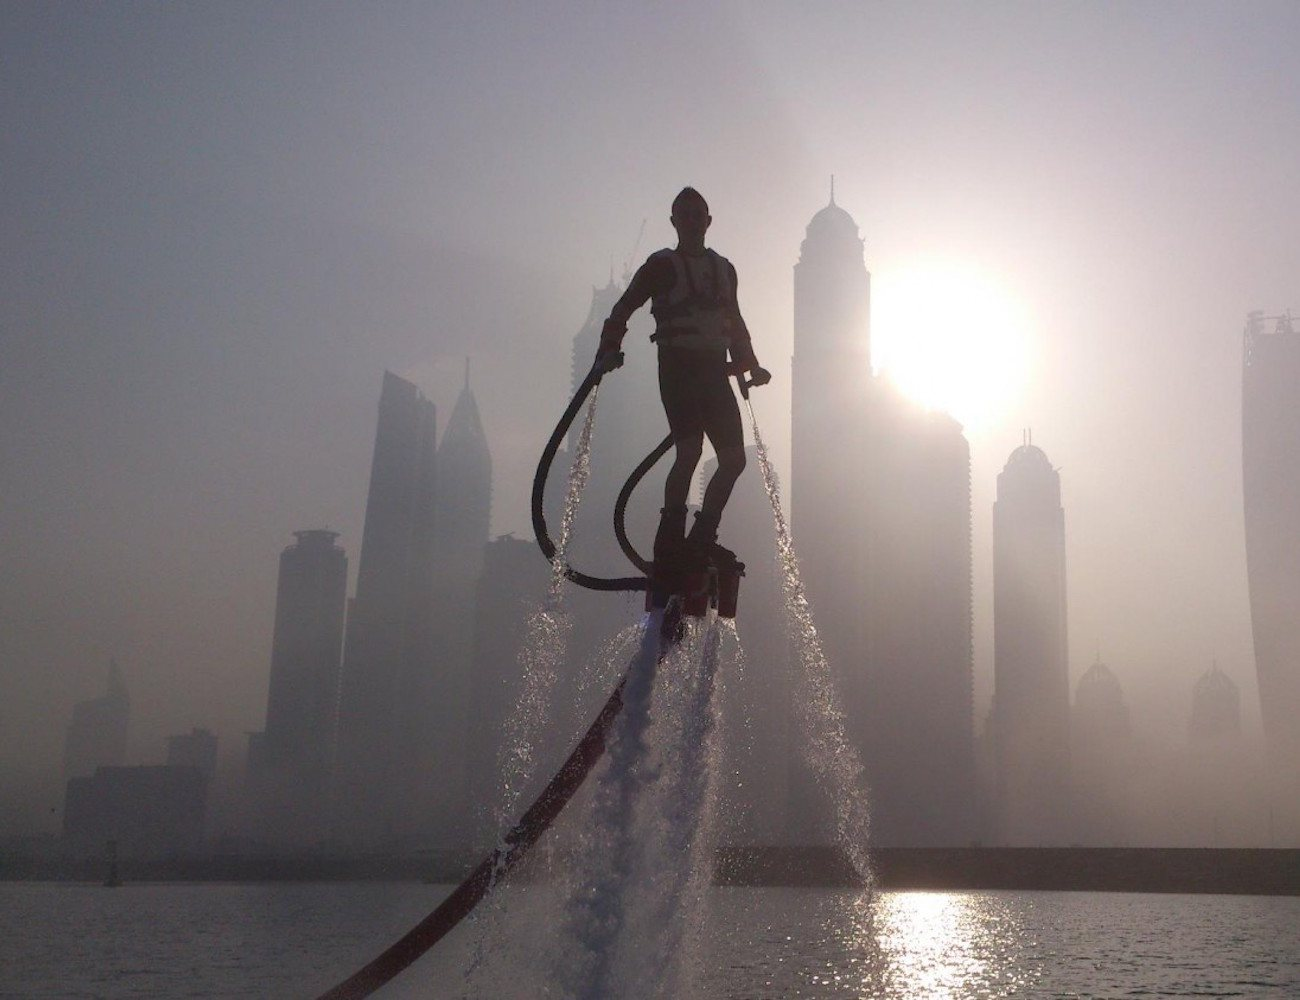 flyboard-v3-complete-kit-by-zapata-02